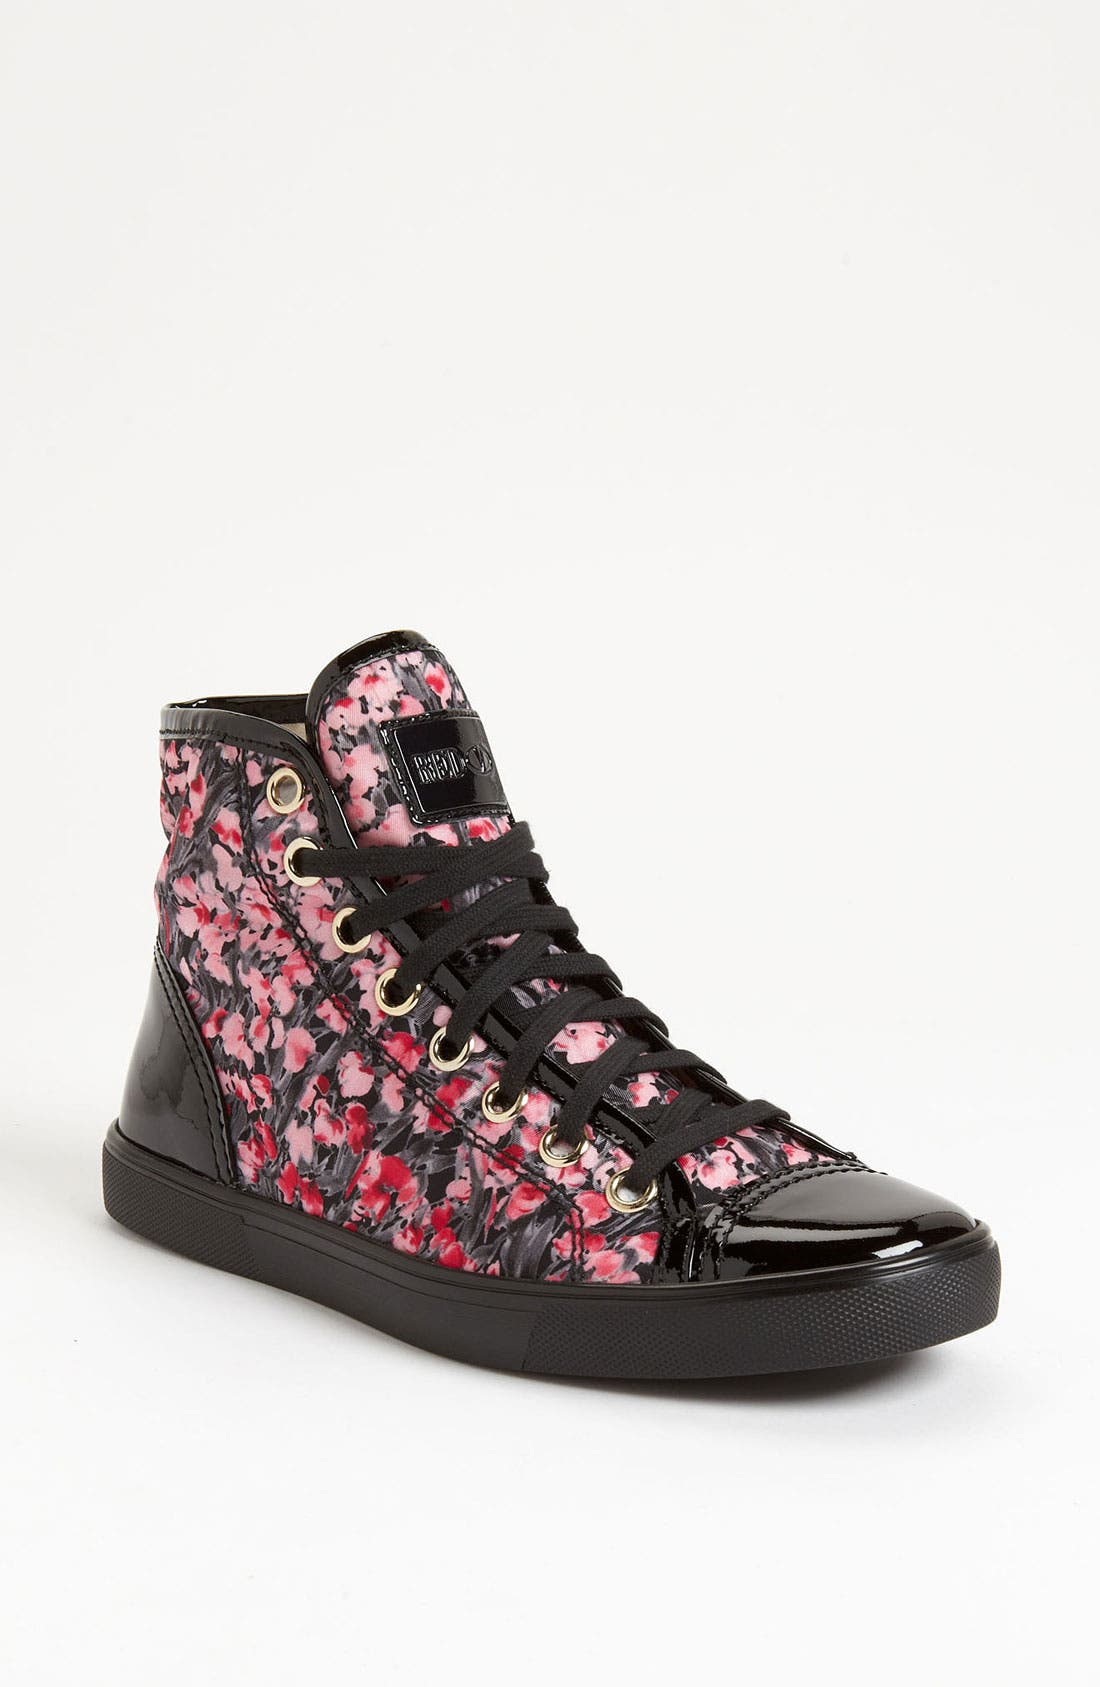 Alternate Image 1 Selected - RED Valentino High Top Sneaker